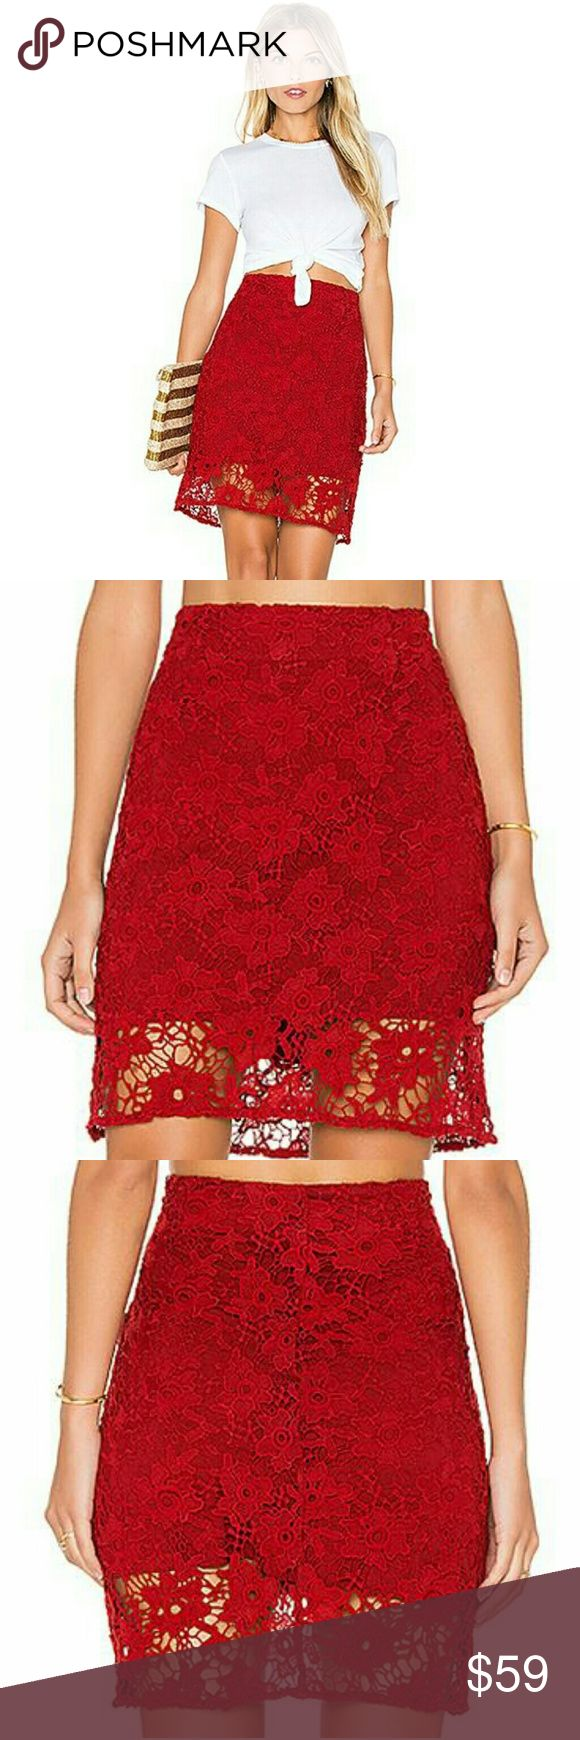 """NWT Sanctuary Women's Red Hand Crafted Lace Skirt New with tags, never used. Women's size XS. Color Boheme Red. MSRP $119. Sold out from most stores.  Above the knee skirt boasts an embroidered floral lace in a rich brick-red hue. Zip closure with hook-and-loop closure. Straight hemline. Lined. Shell: 100% polyester; Lining: 97% viscose, 3% spandex. Machine wash cold. 14"""" waist, 19"""" long laying flat.  Remember to bundle up and save, so check my closet for more treasure finds. Sanctuary…"""